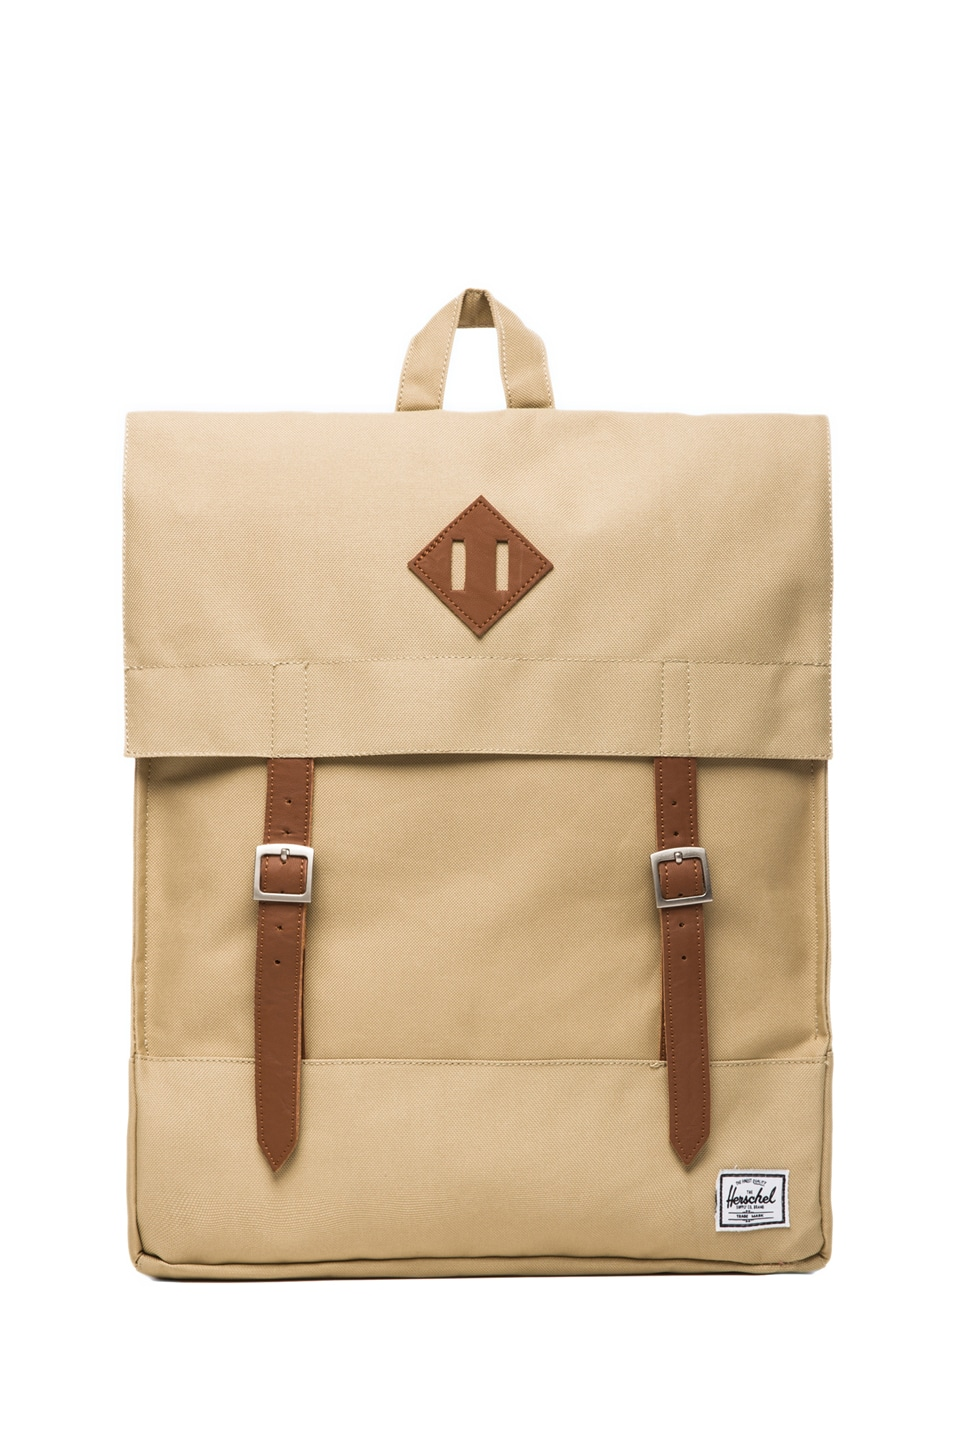 Herschel Supply Co. Survey Backpack in Khaki